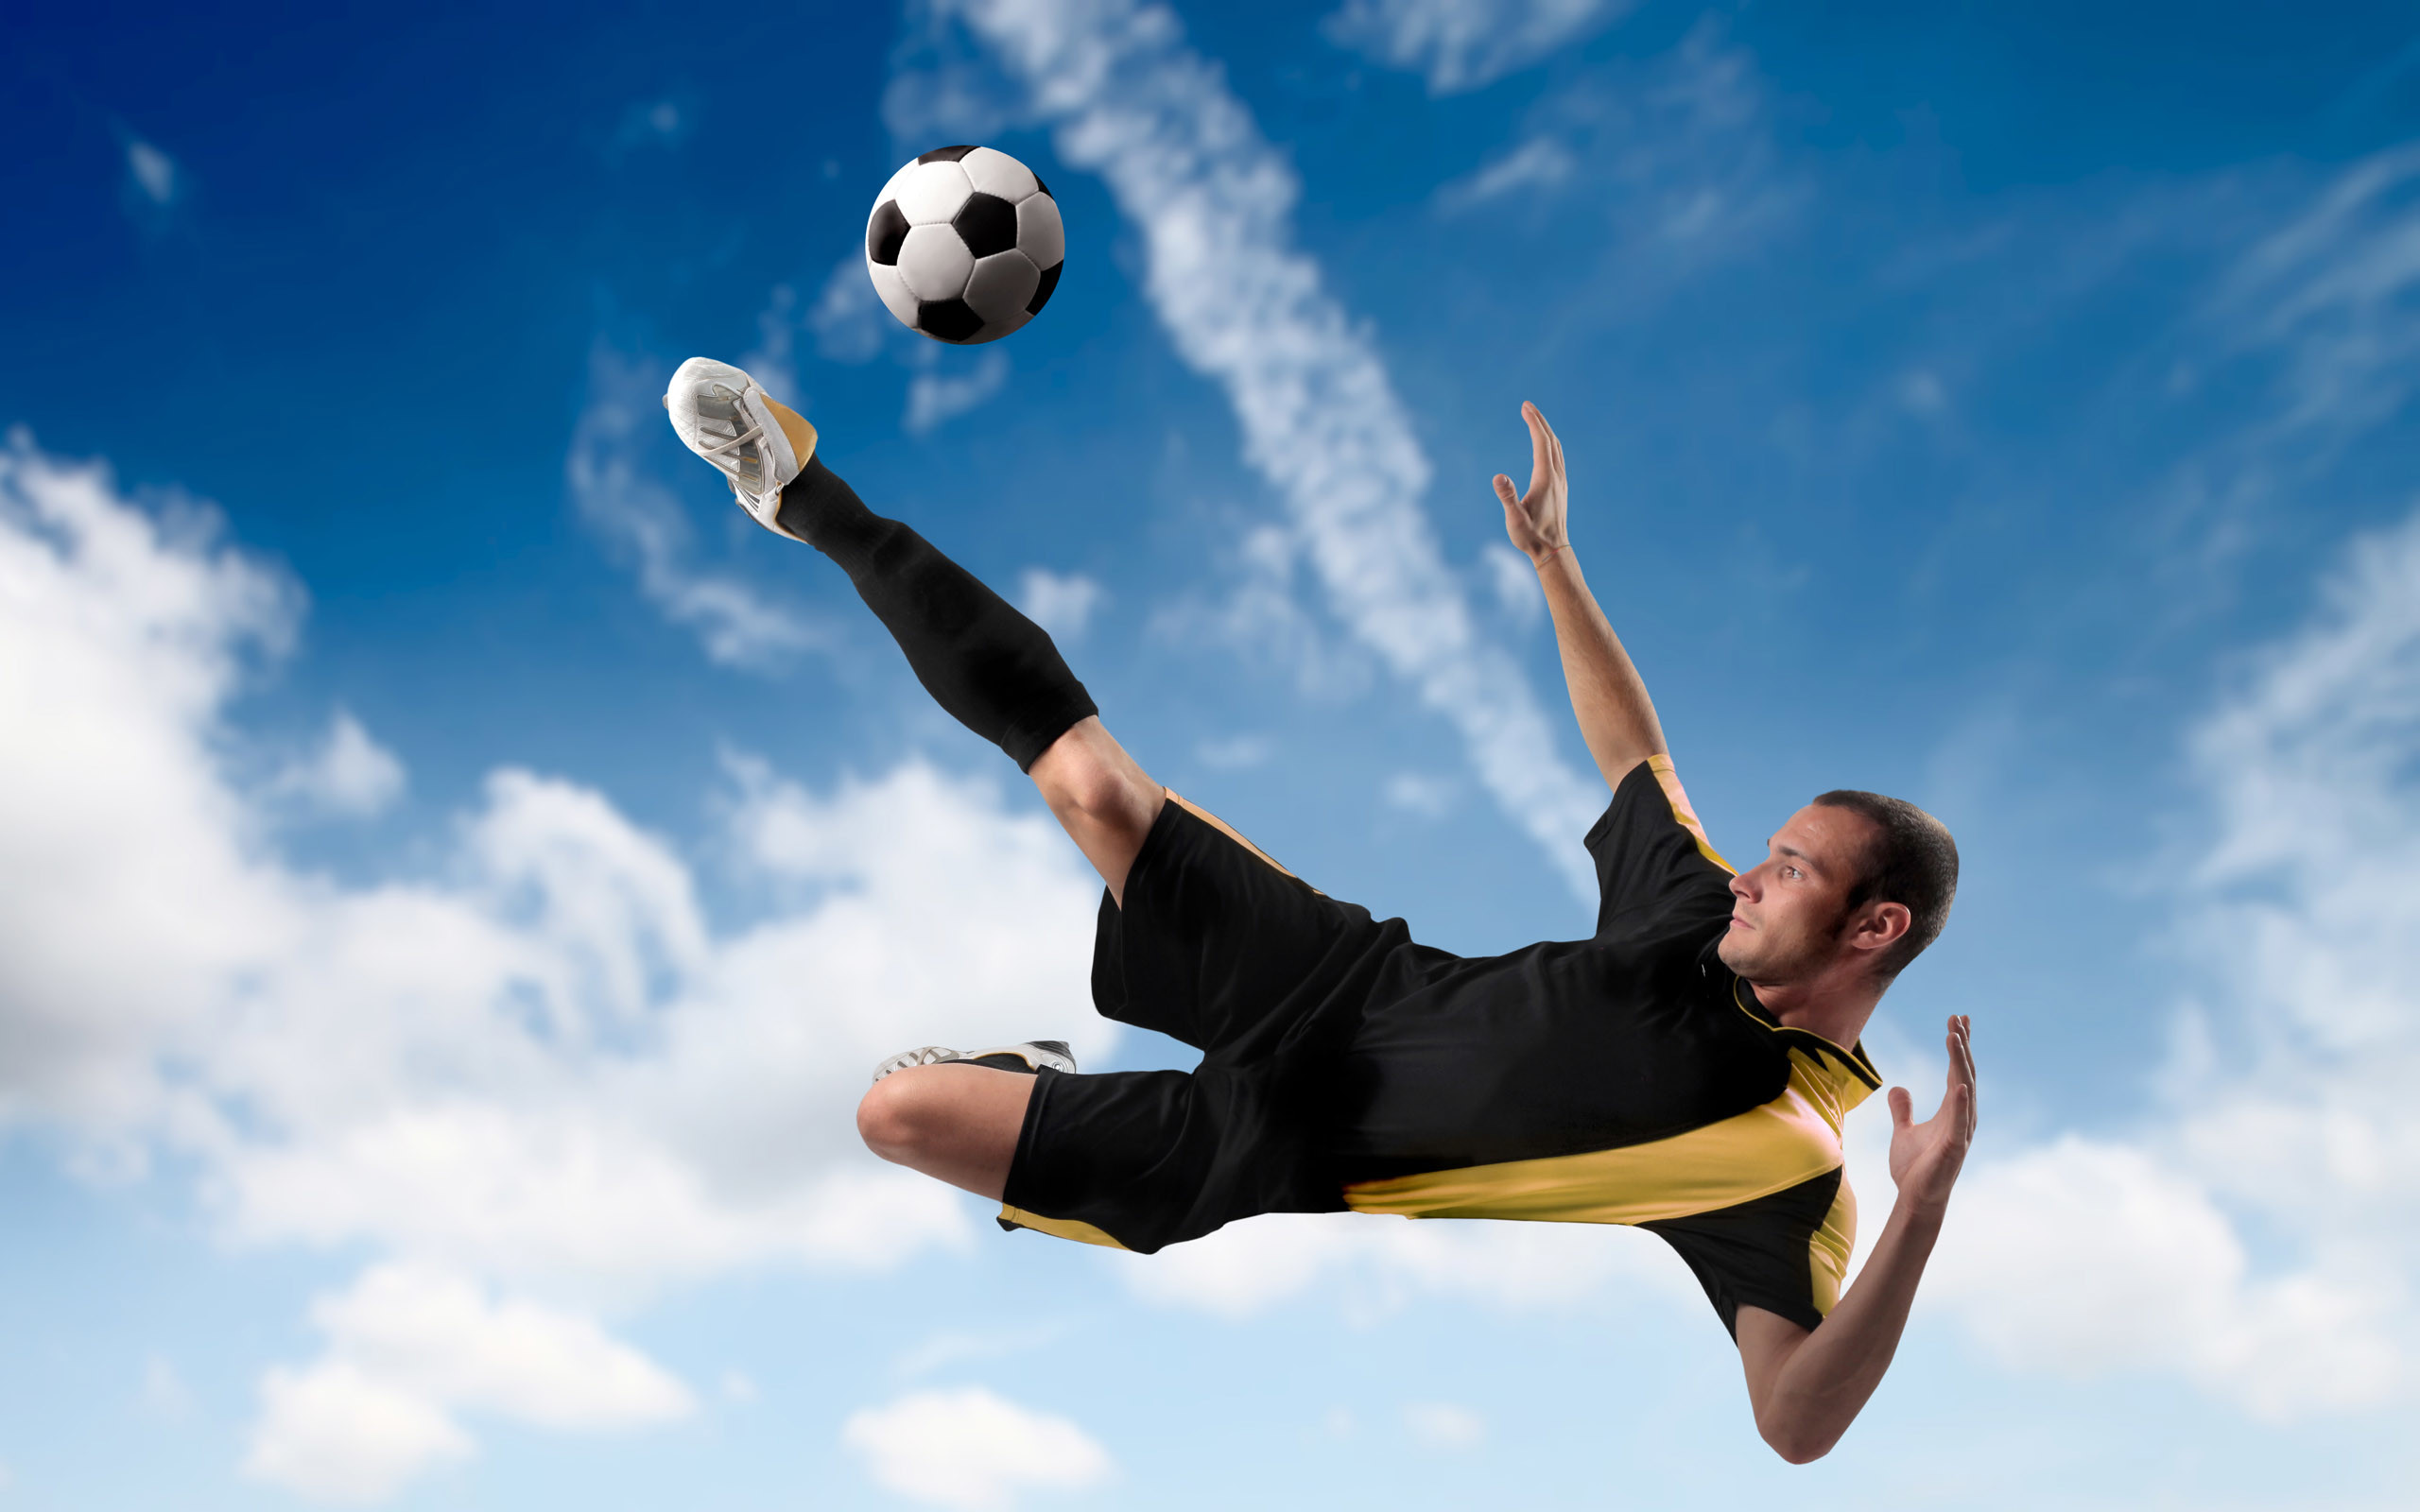 Cool Soccer Players Come and like us on Facebook, we are a soccer news site